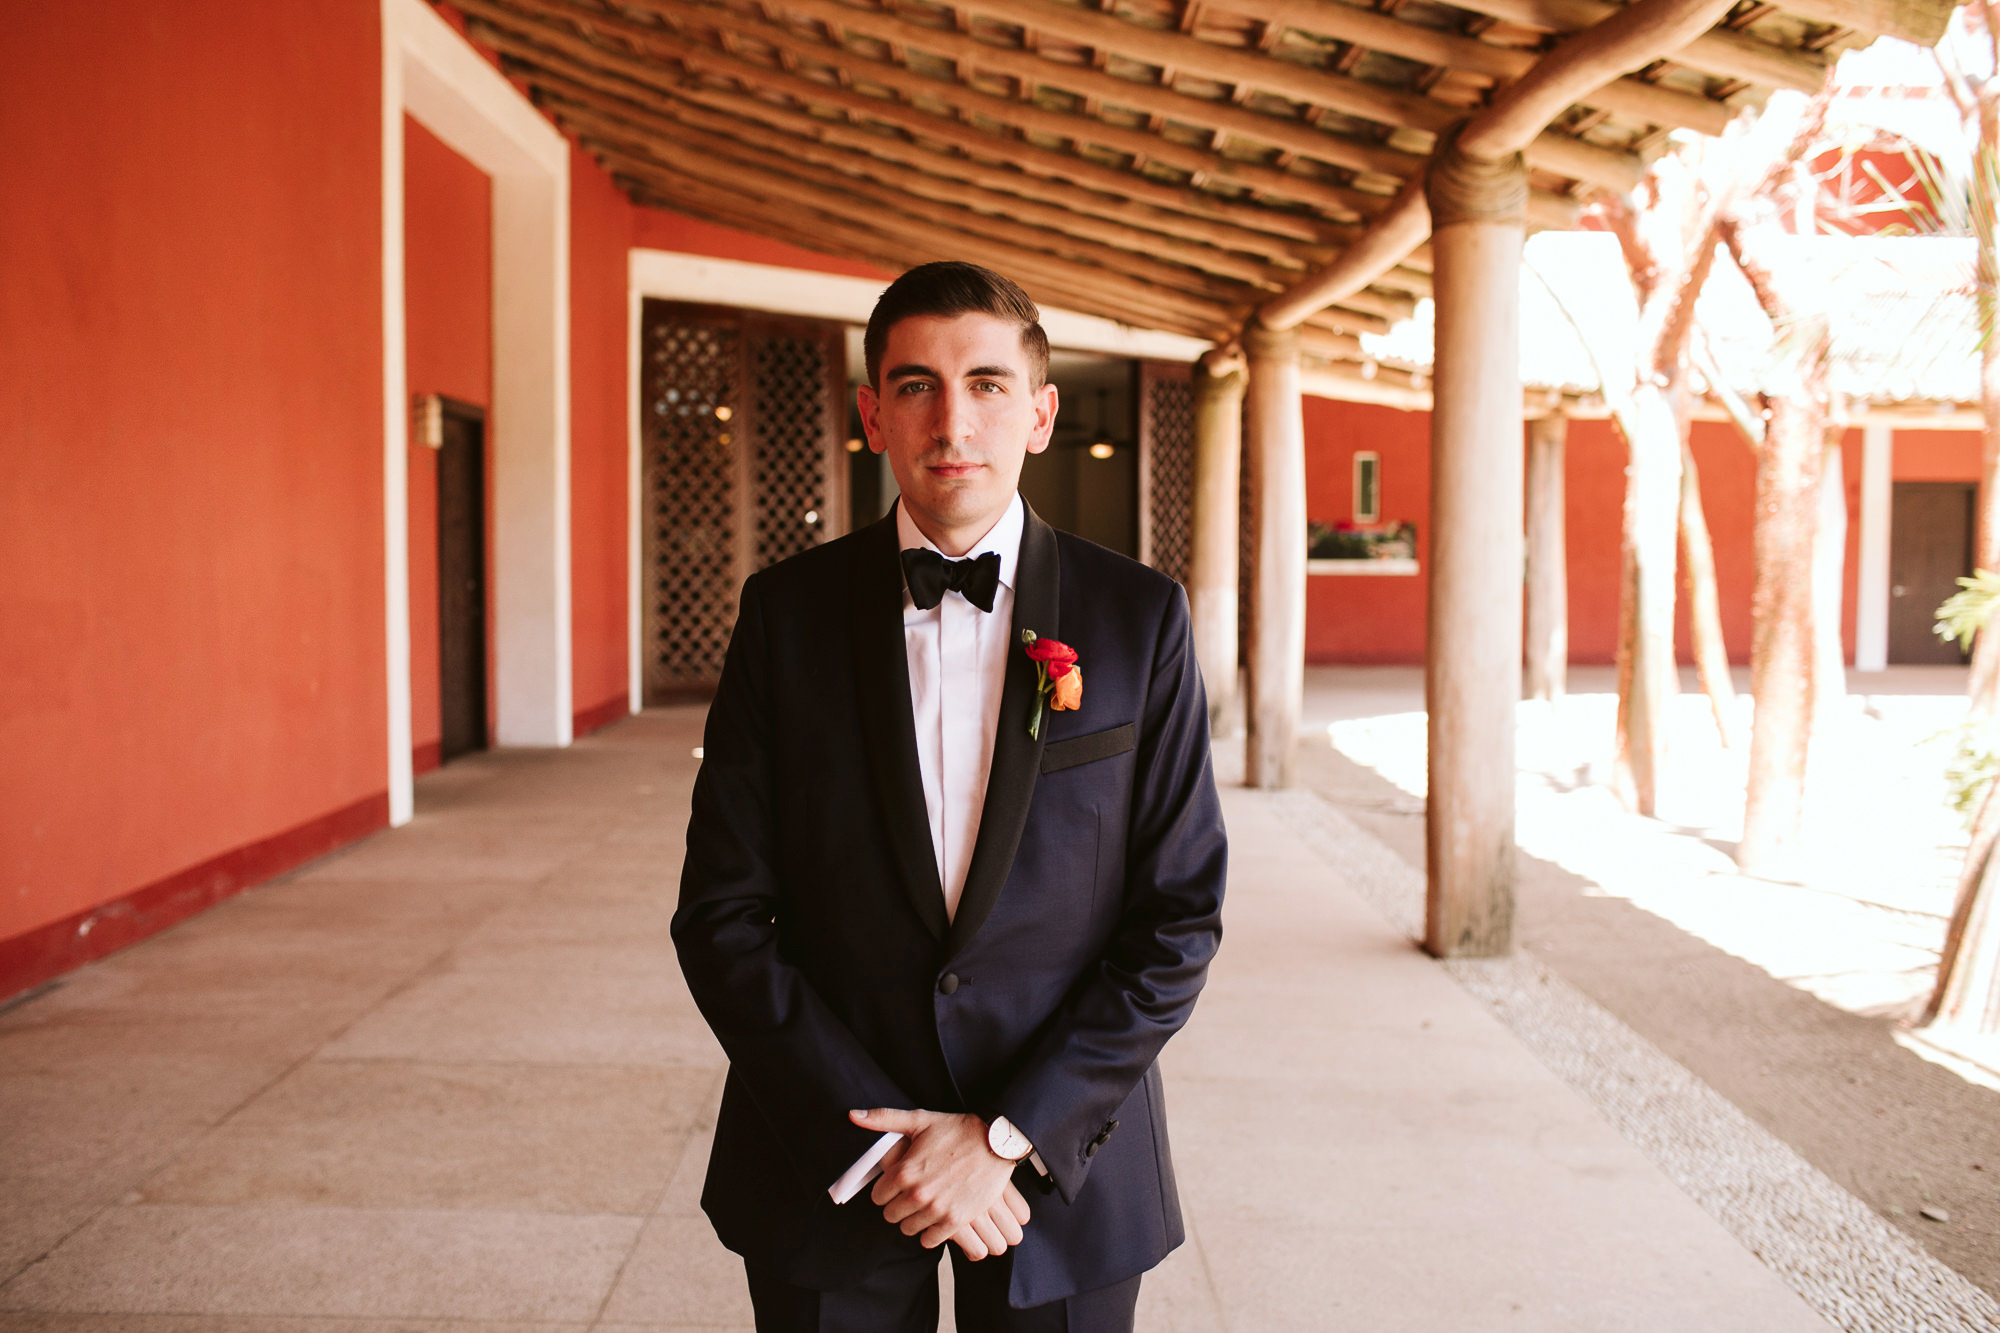 Sayulita-wedding-63.jpg